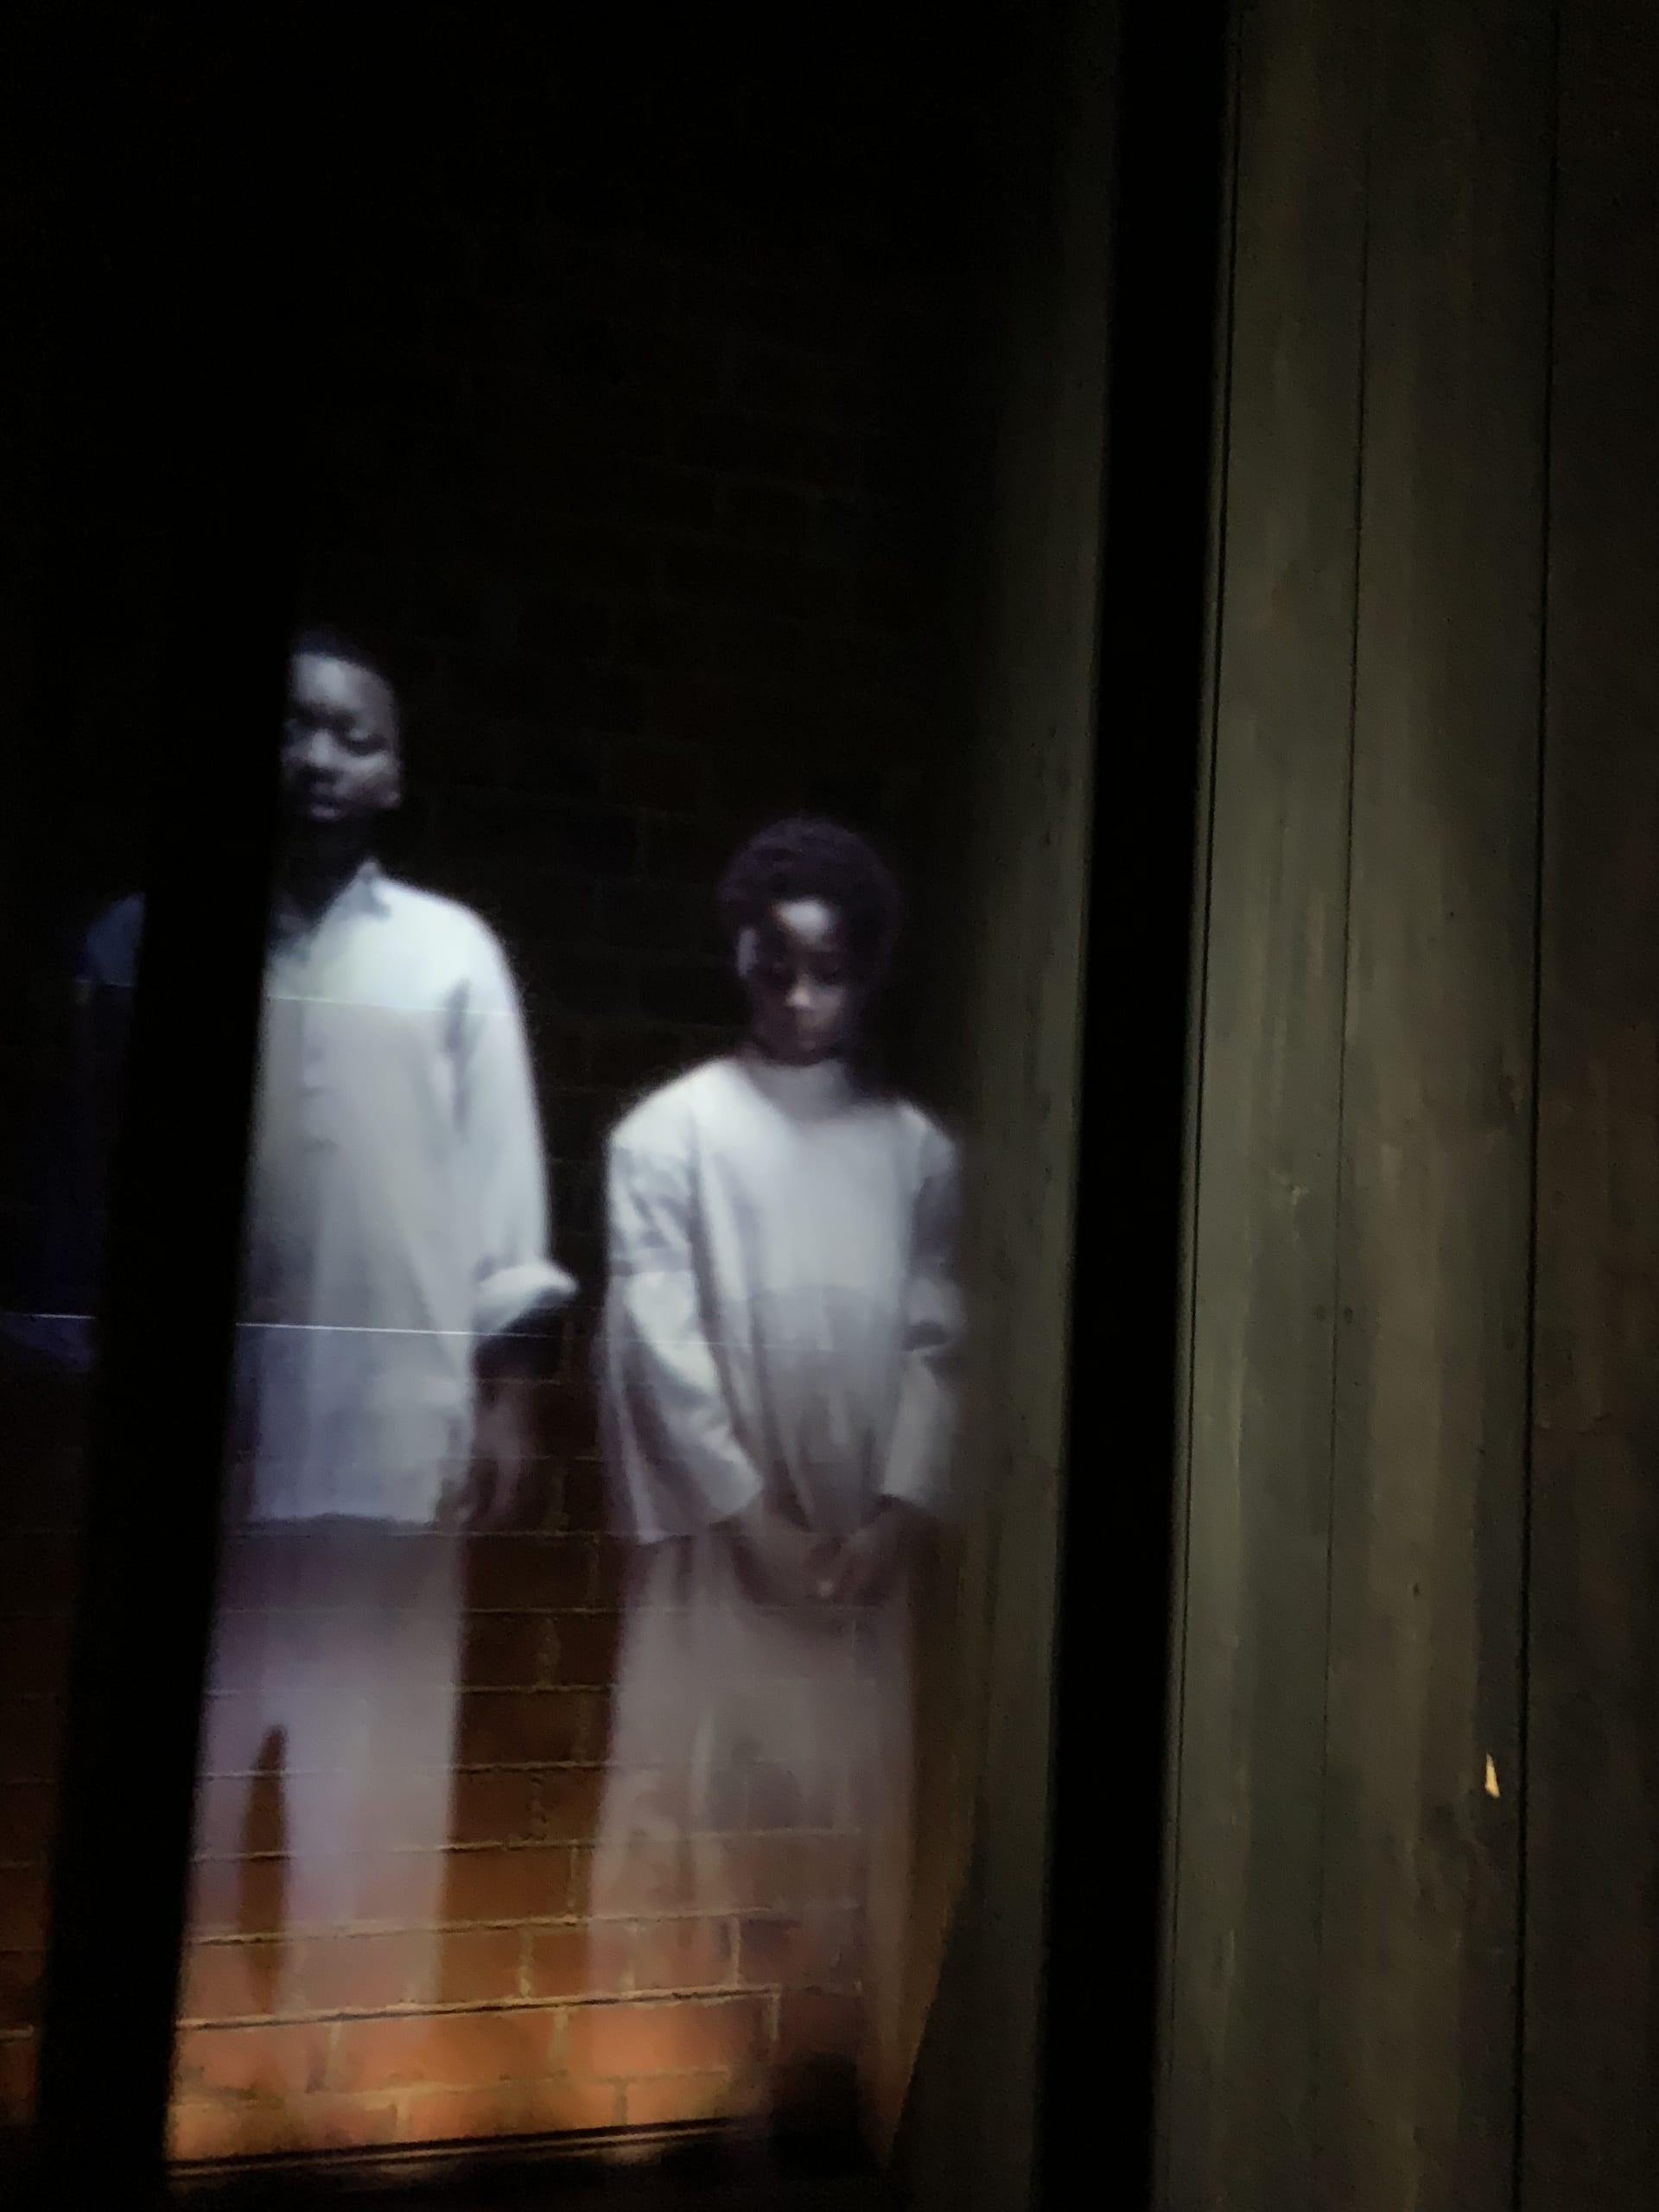 opening installations of holograms with voices speaking accounts of slaves in holding cells before auction